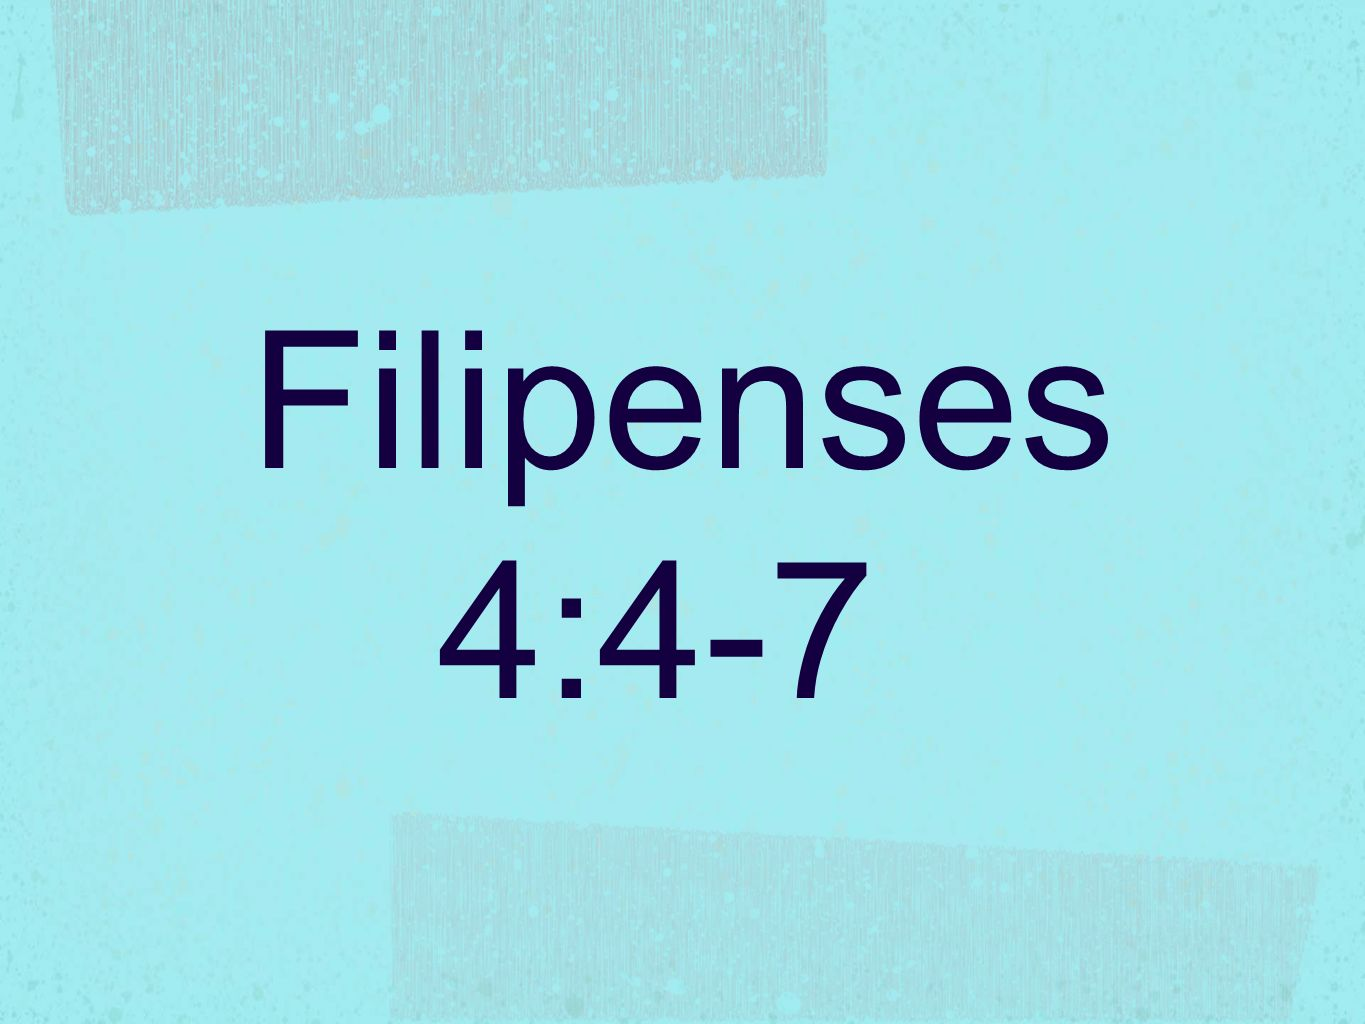 Filipenses 4:4-7